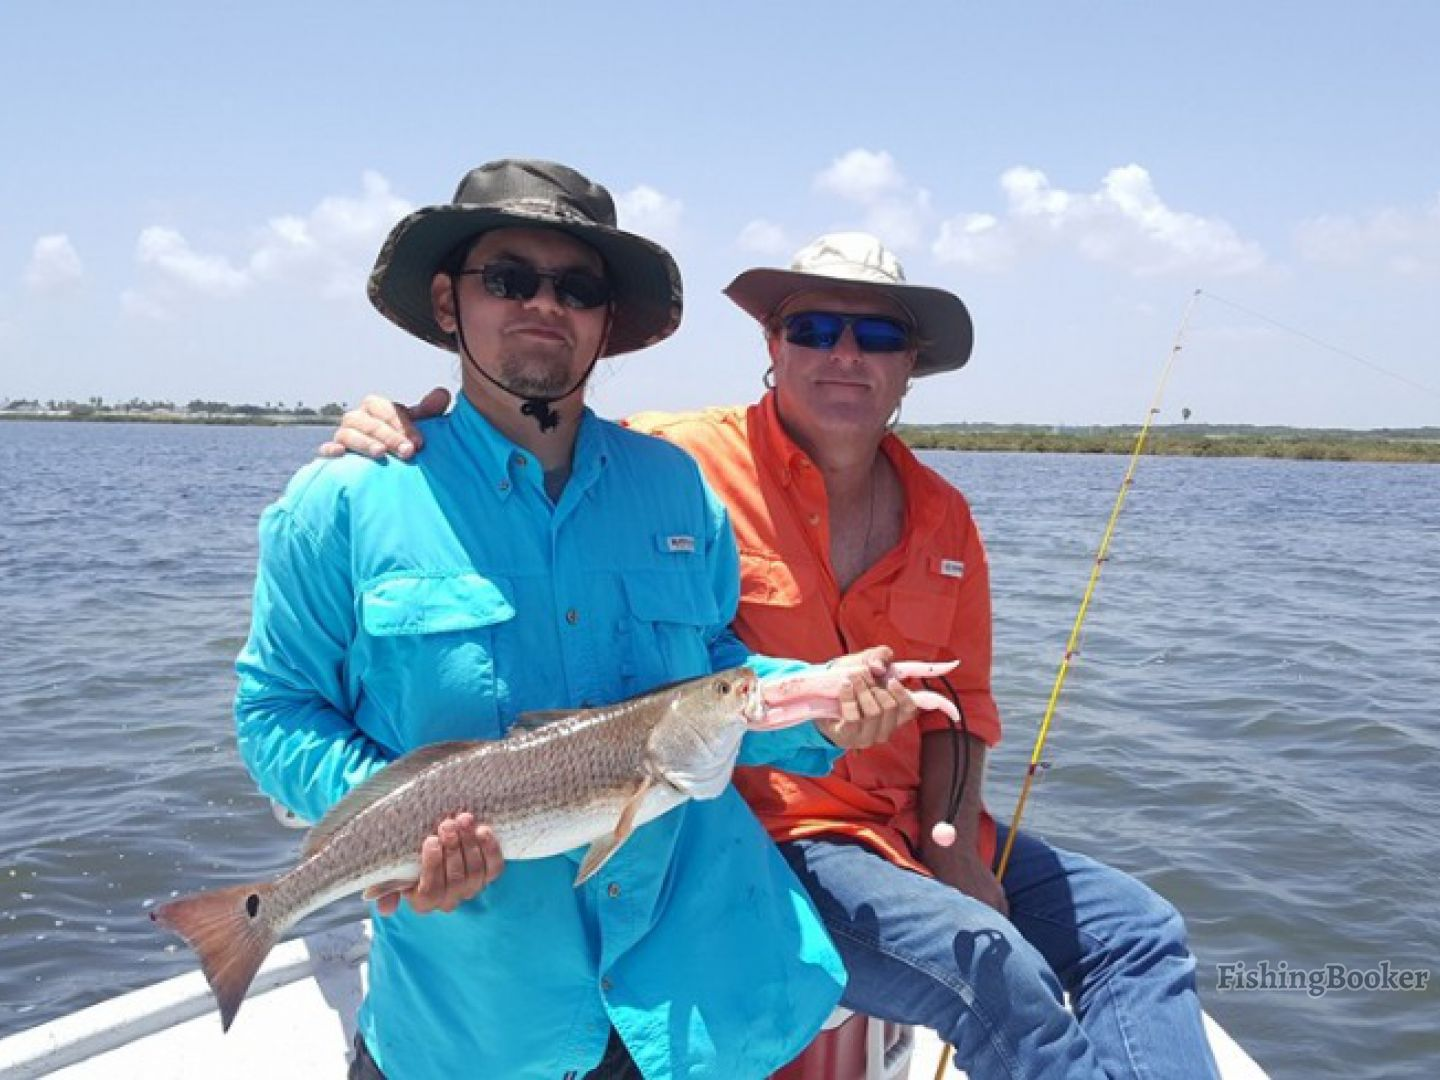 Jen s coastal guide service rockport texas for Rockport fishing charters